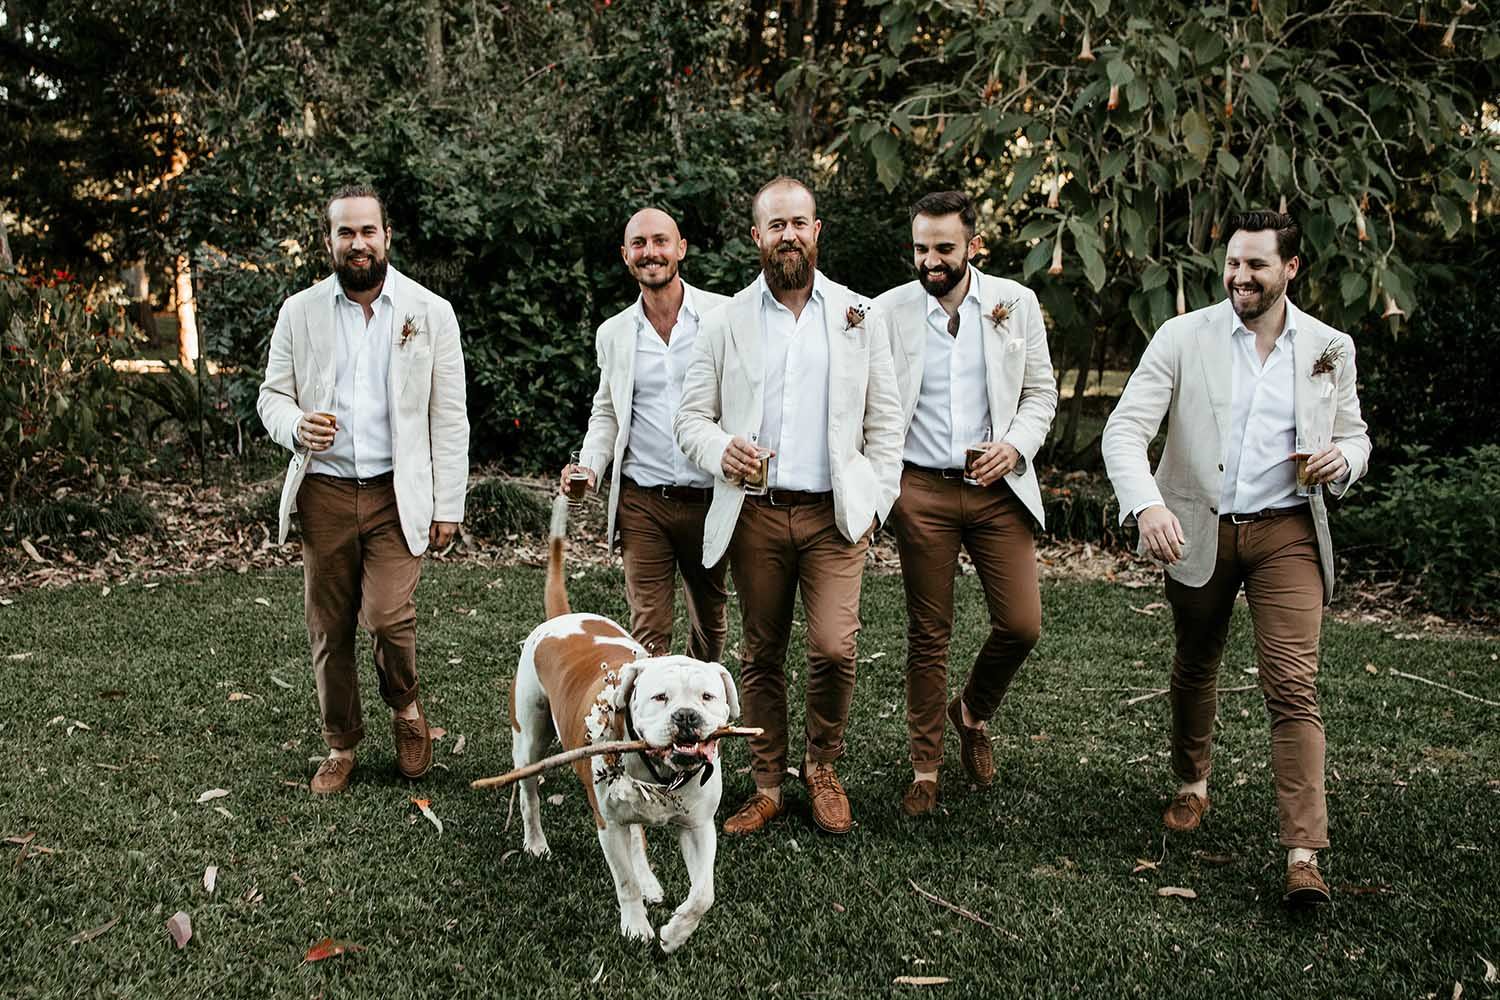 Groom with his groomsmen and a dog  walking and laughing - nambucca valley wedding photographer -Bellingen photographer - Coffs coast wedding photographer - elopment - Nambucca heads photographer